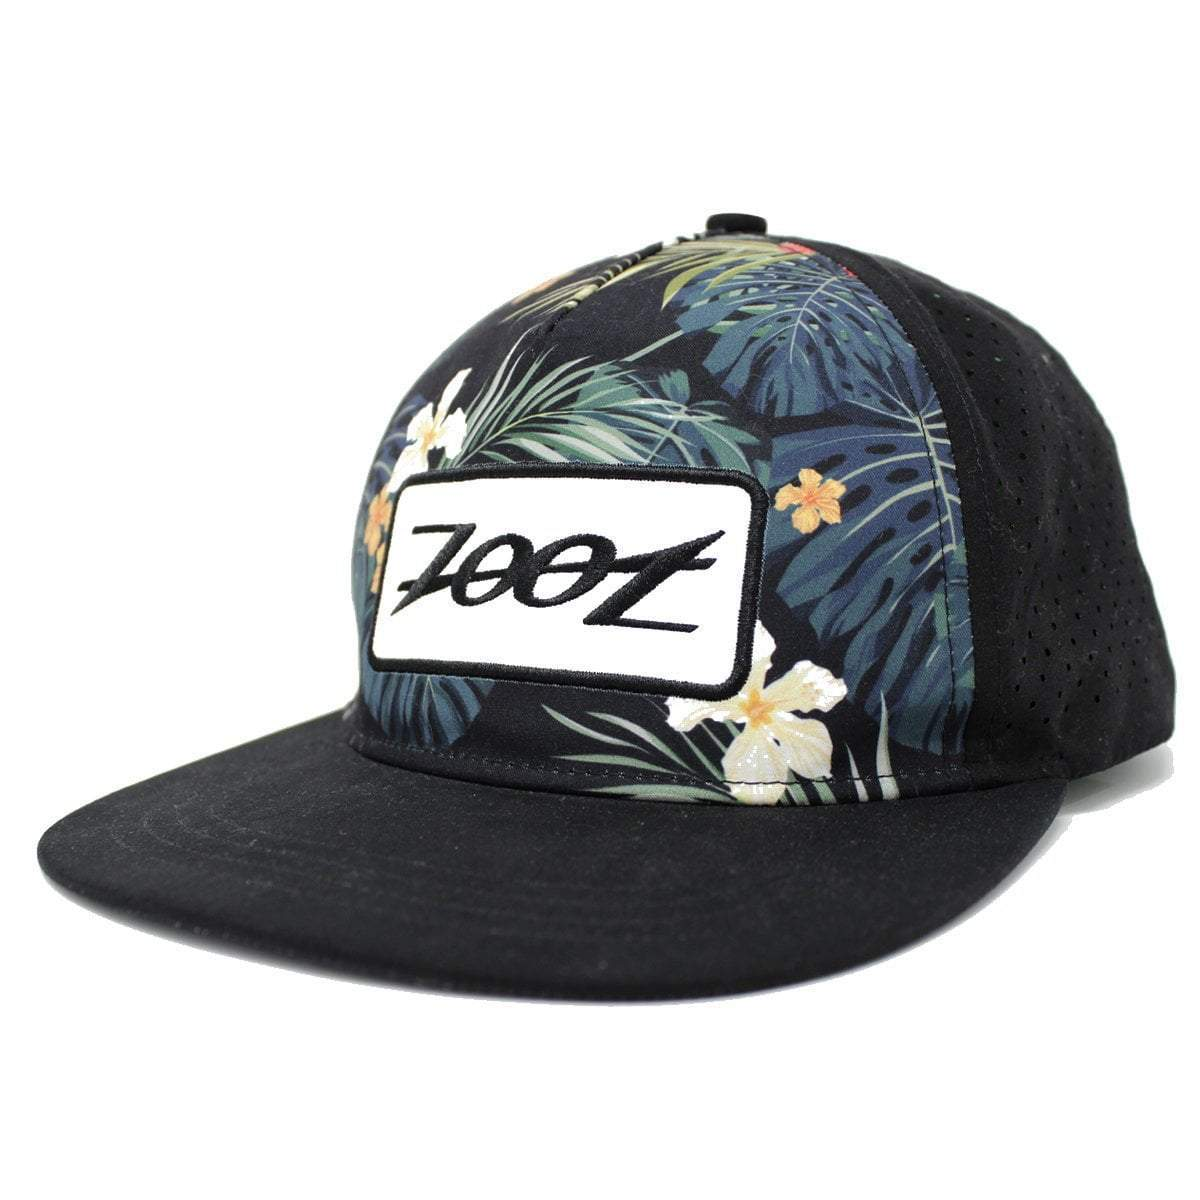 GORRA UNISEX TECH TRUCKER FLORAL FLAT BILL